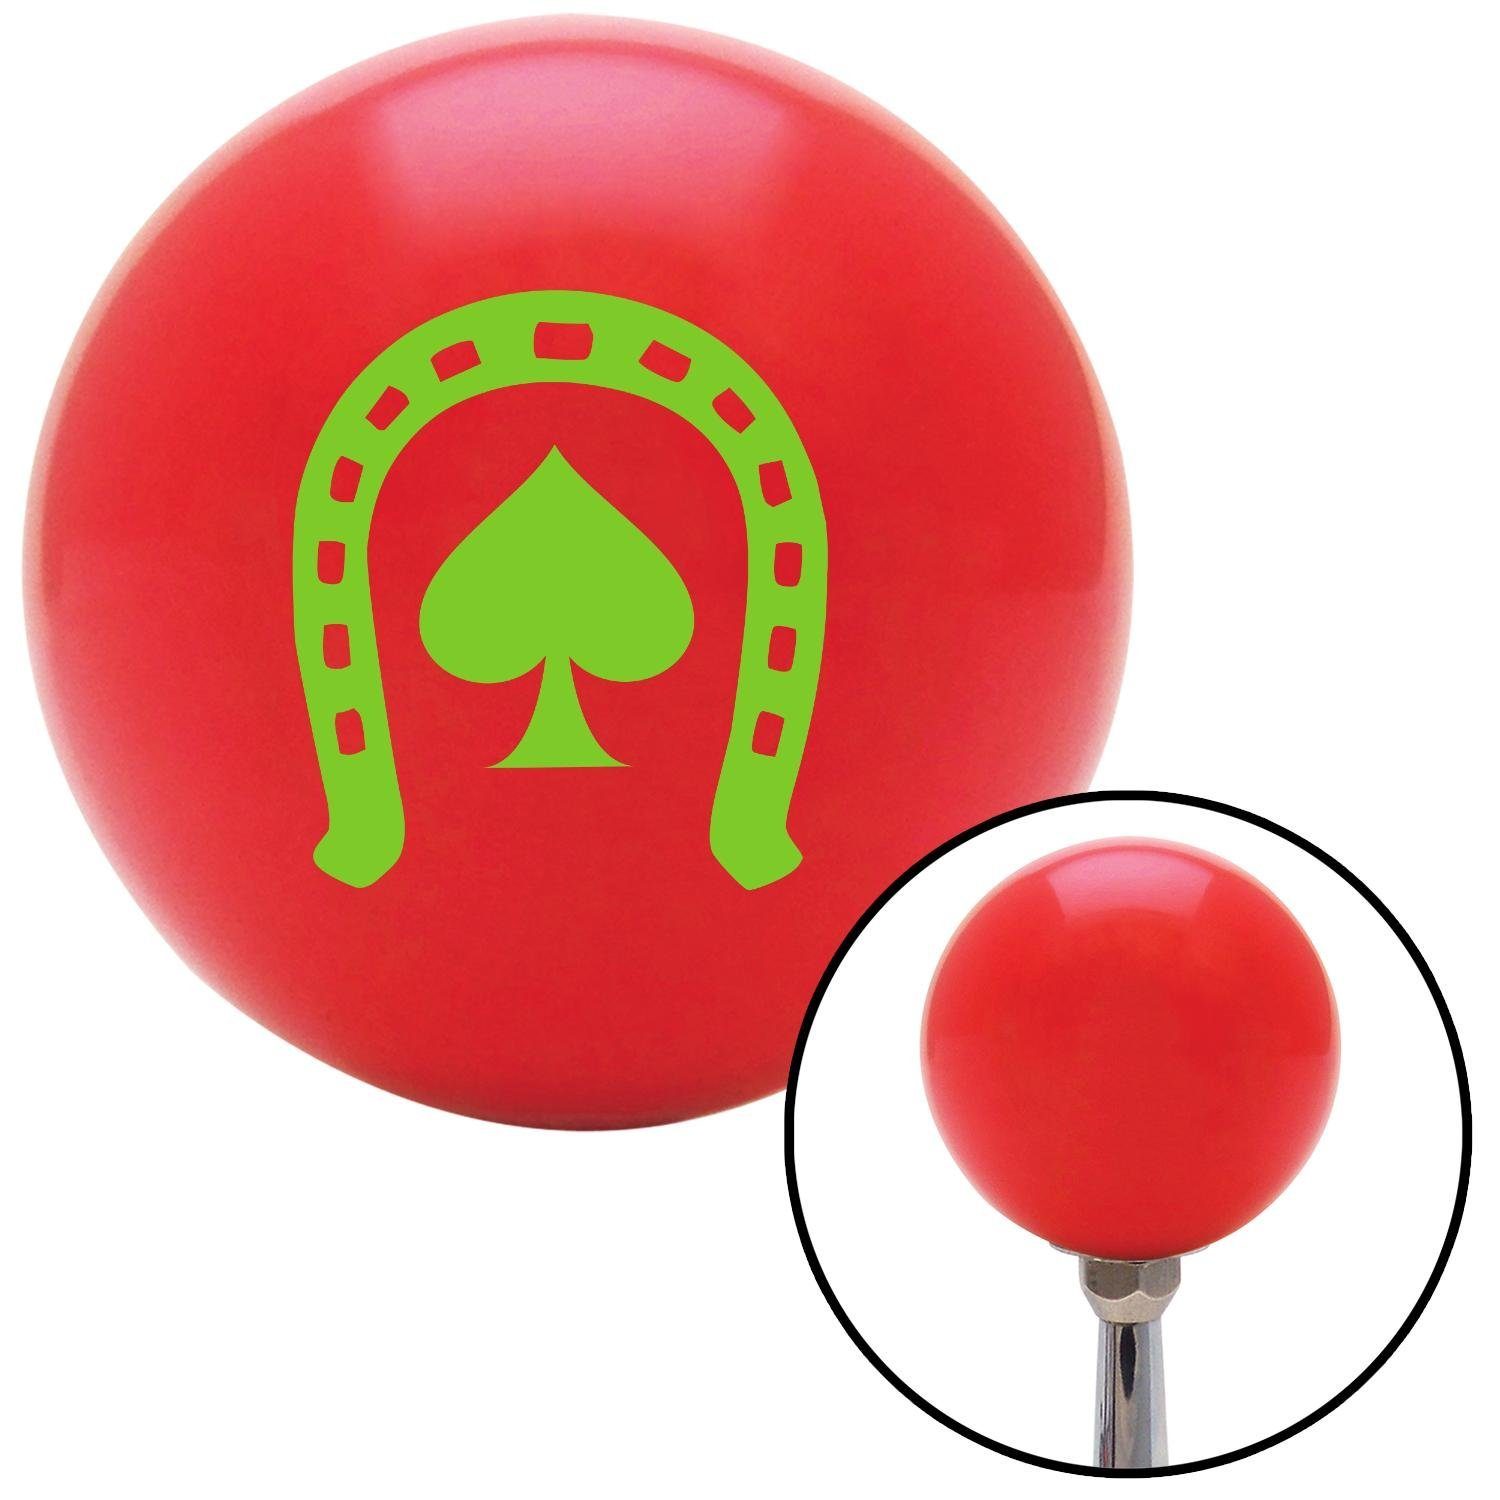 American Shifter 94902 Red Shift Knob with M16 x 1.5 Insert Green Horseshoe Over Spade